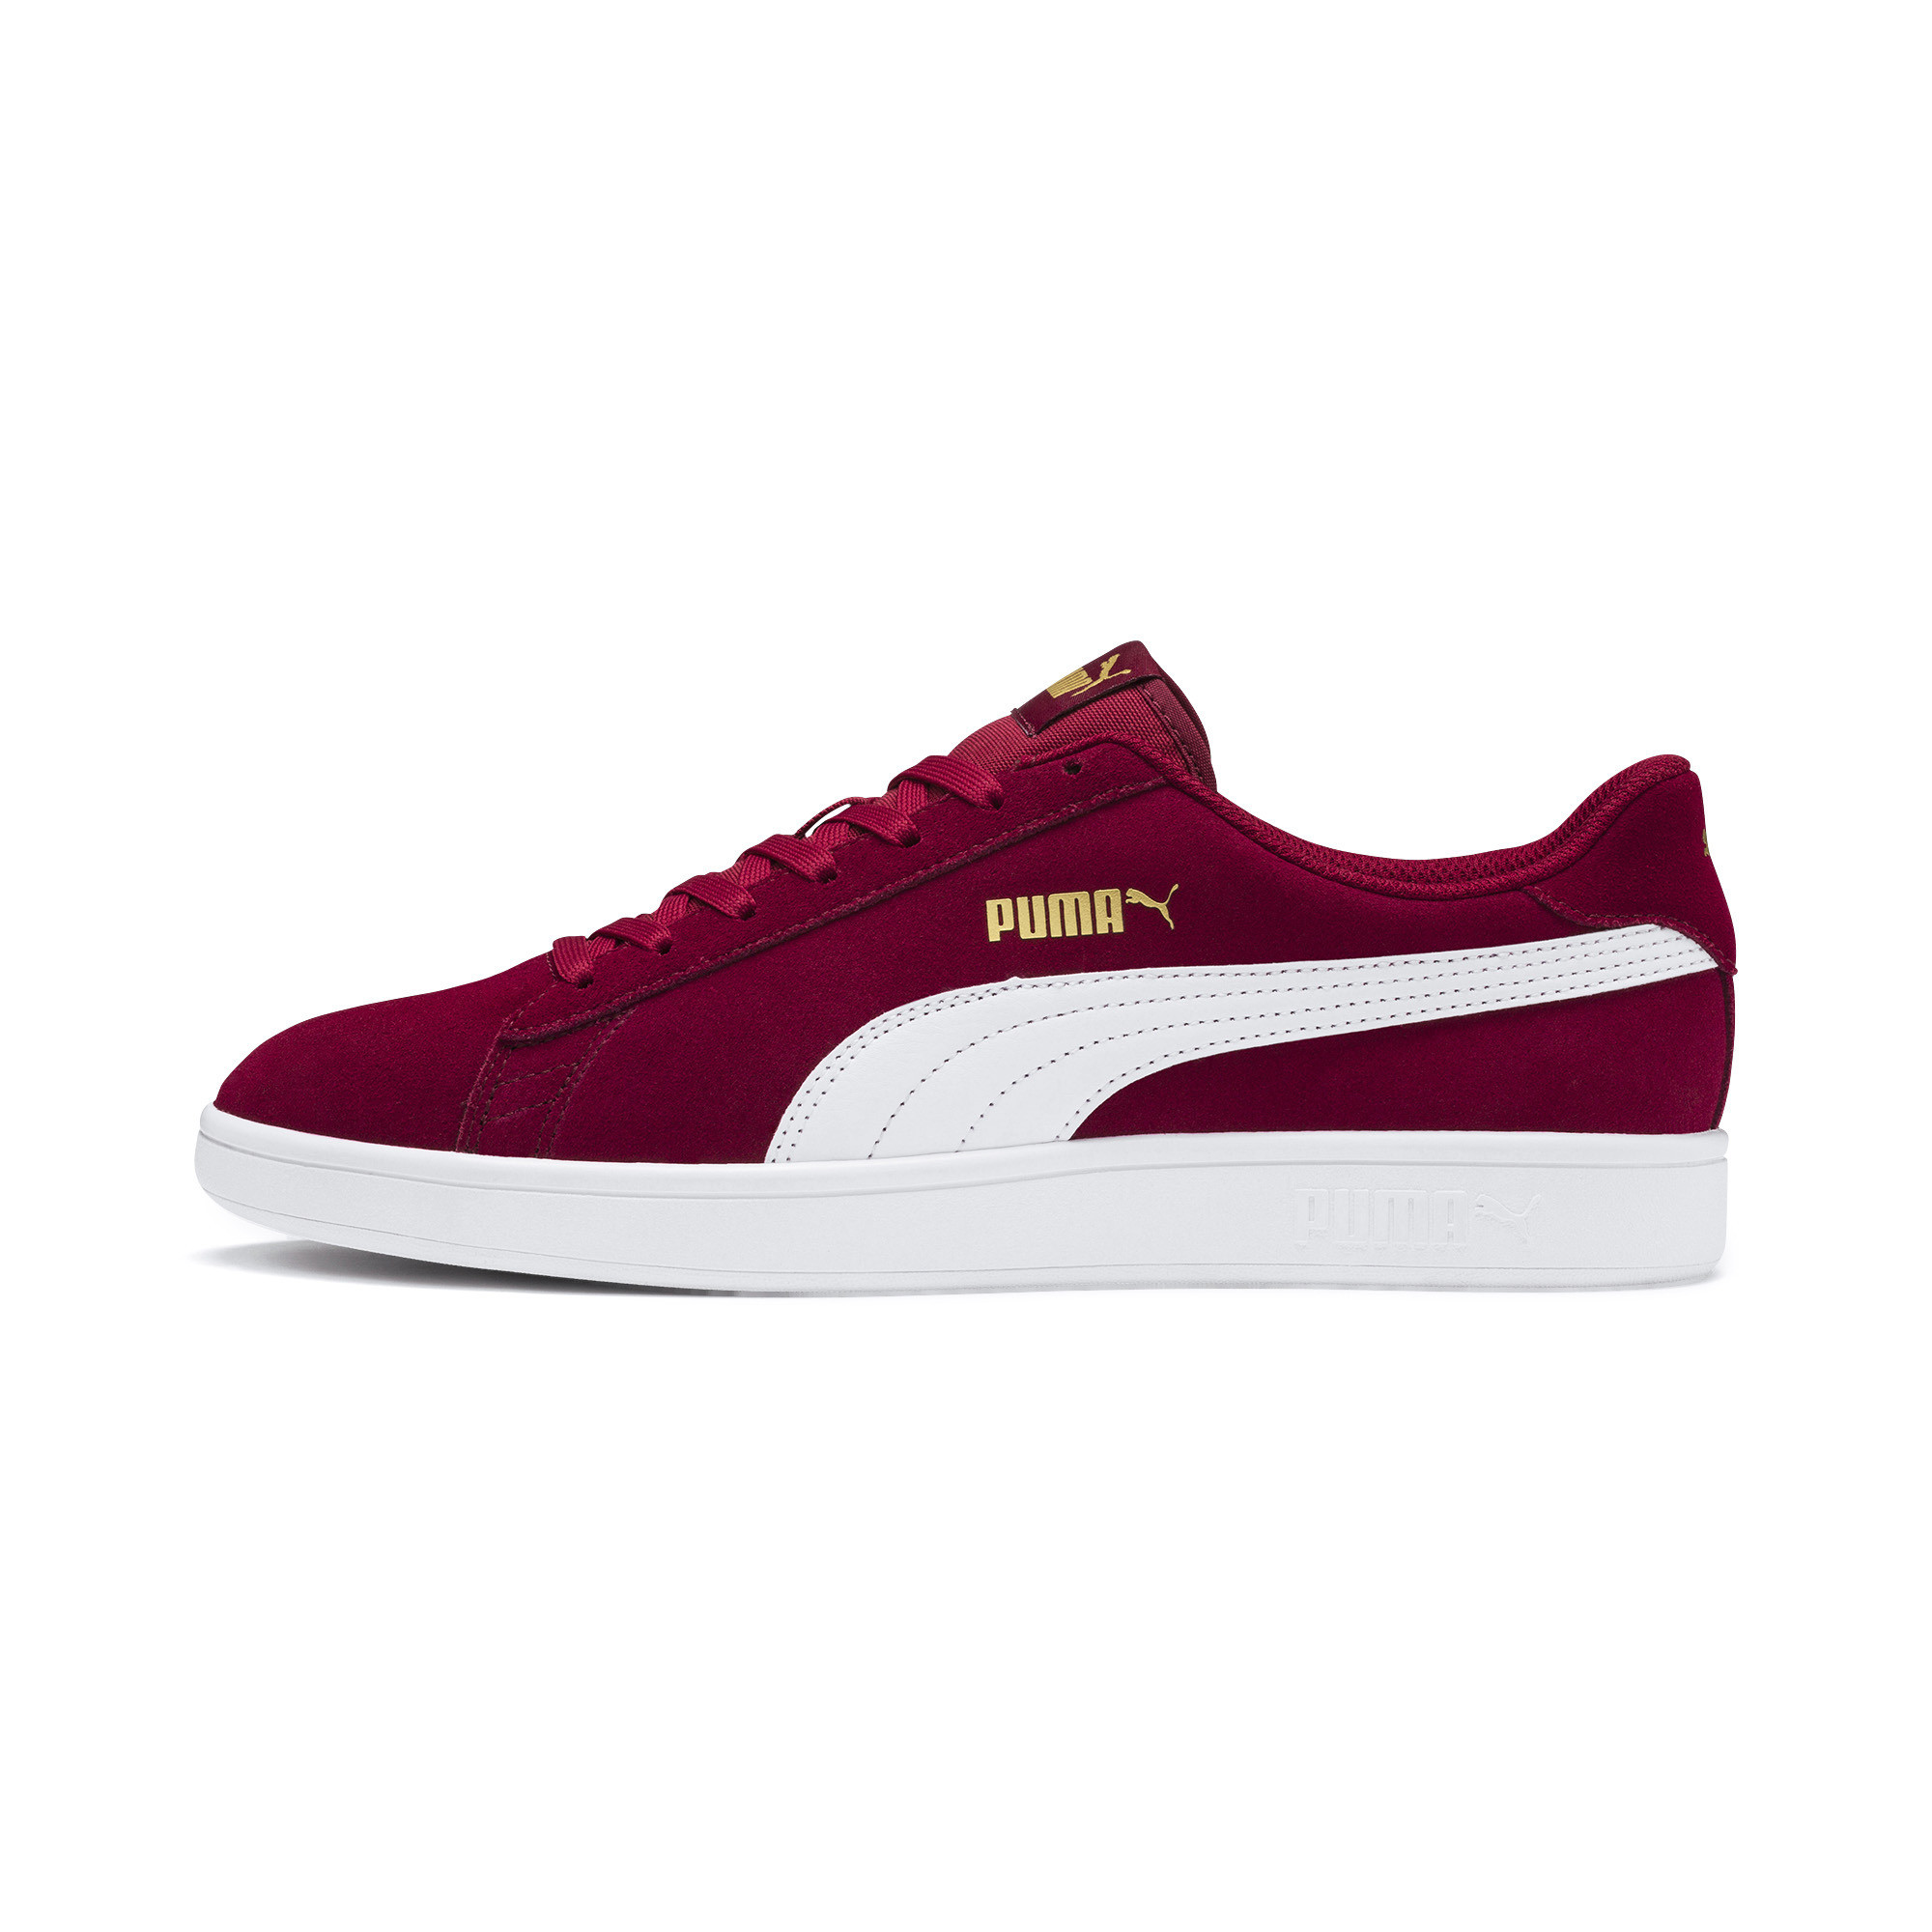 PUMA-PUMA-Smash-v2-Sneakers-Men-Shoe-Basics thumbnail 27